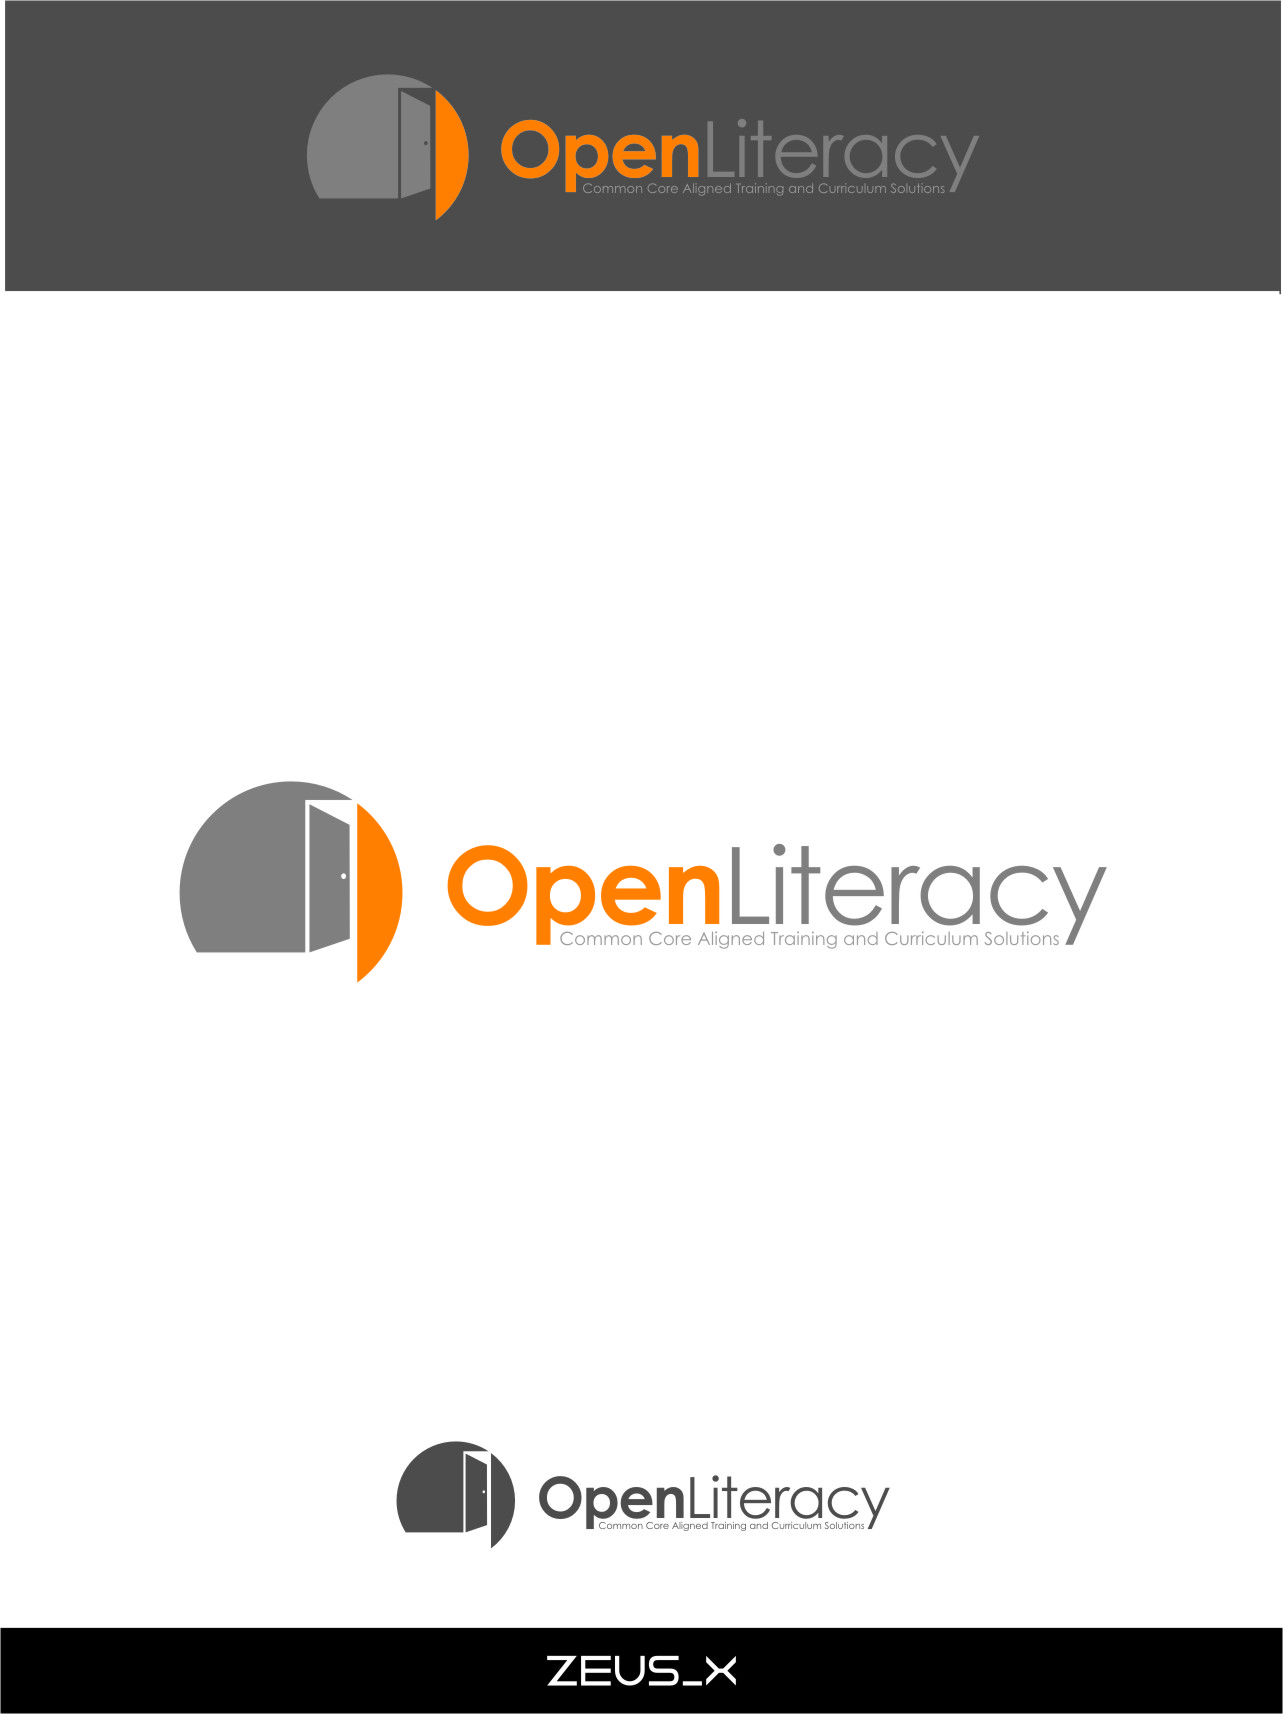 Logo Design by RasYa Muhammad Athaya - Entry No. 148 in the Logo Design Contest Inspiring Logo Design for OpenLiteracy.